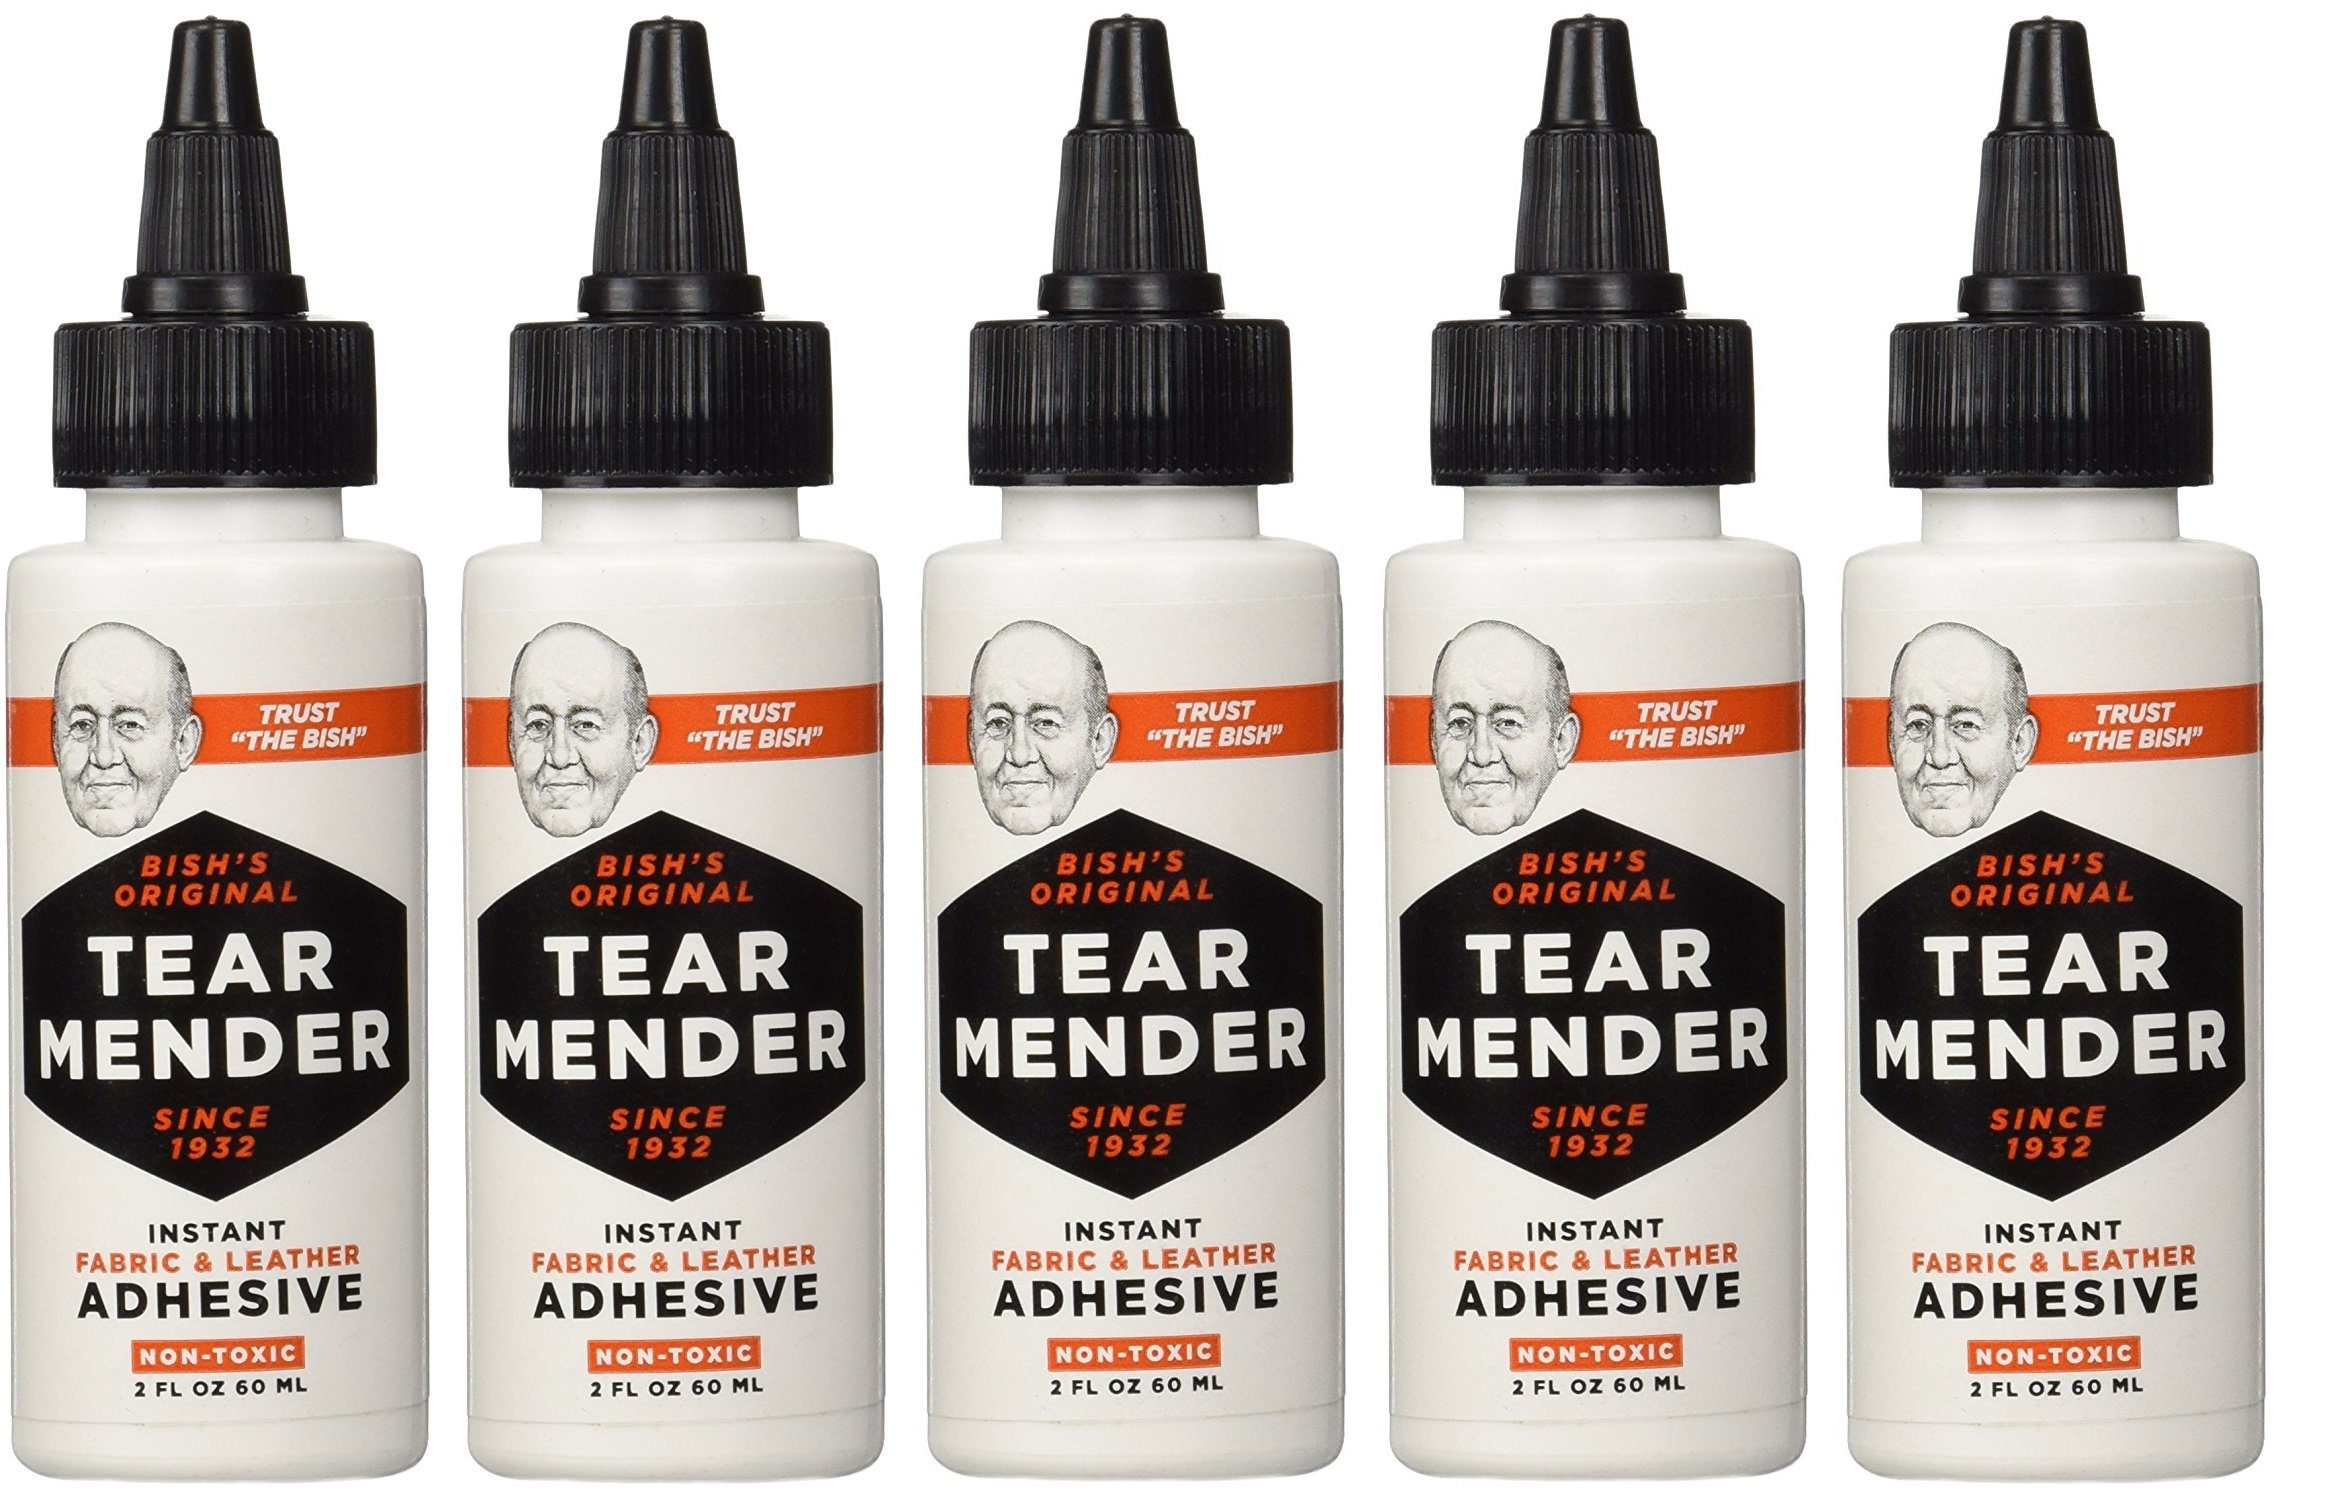 Tear Mender TG-2 Bishs vcgCQr Original Tear Mender Instant Fabric and Leather Adhesive, 2 oz (Pack of 5) by Tear Mender